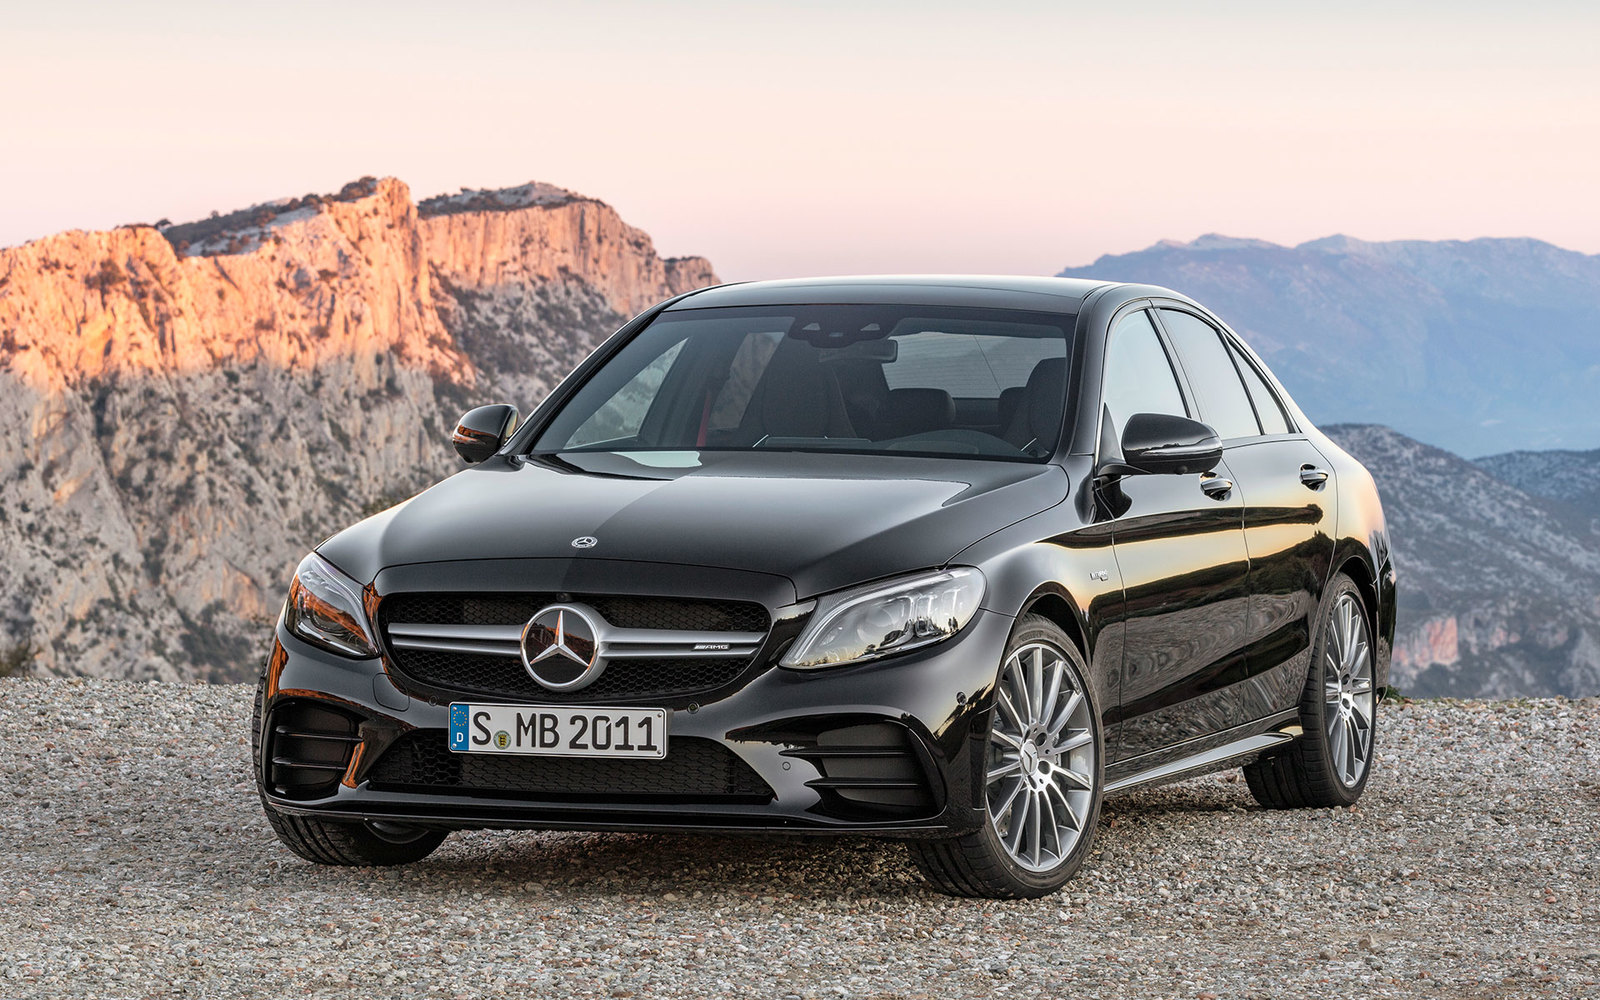 Facelift Mercedes-AMG C43 4Matic